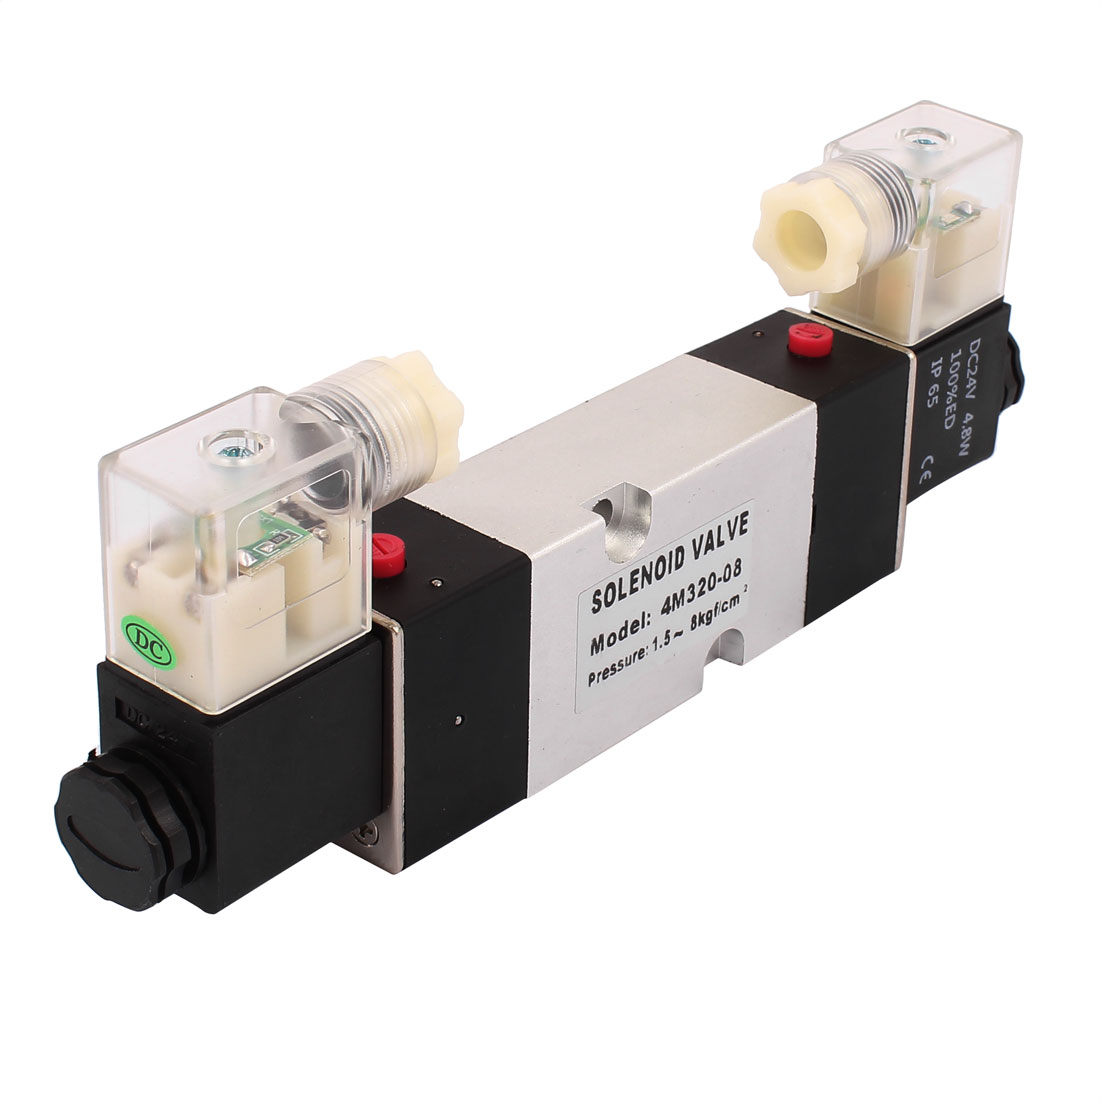 4M320-08 DC 24V 2 Position 5 Way RC1/4 Neutral Air Selector Solenoid Valve